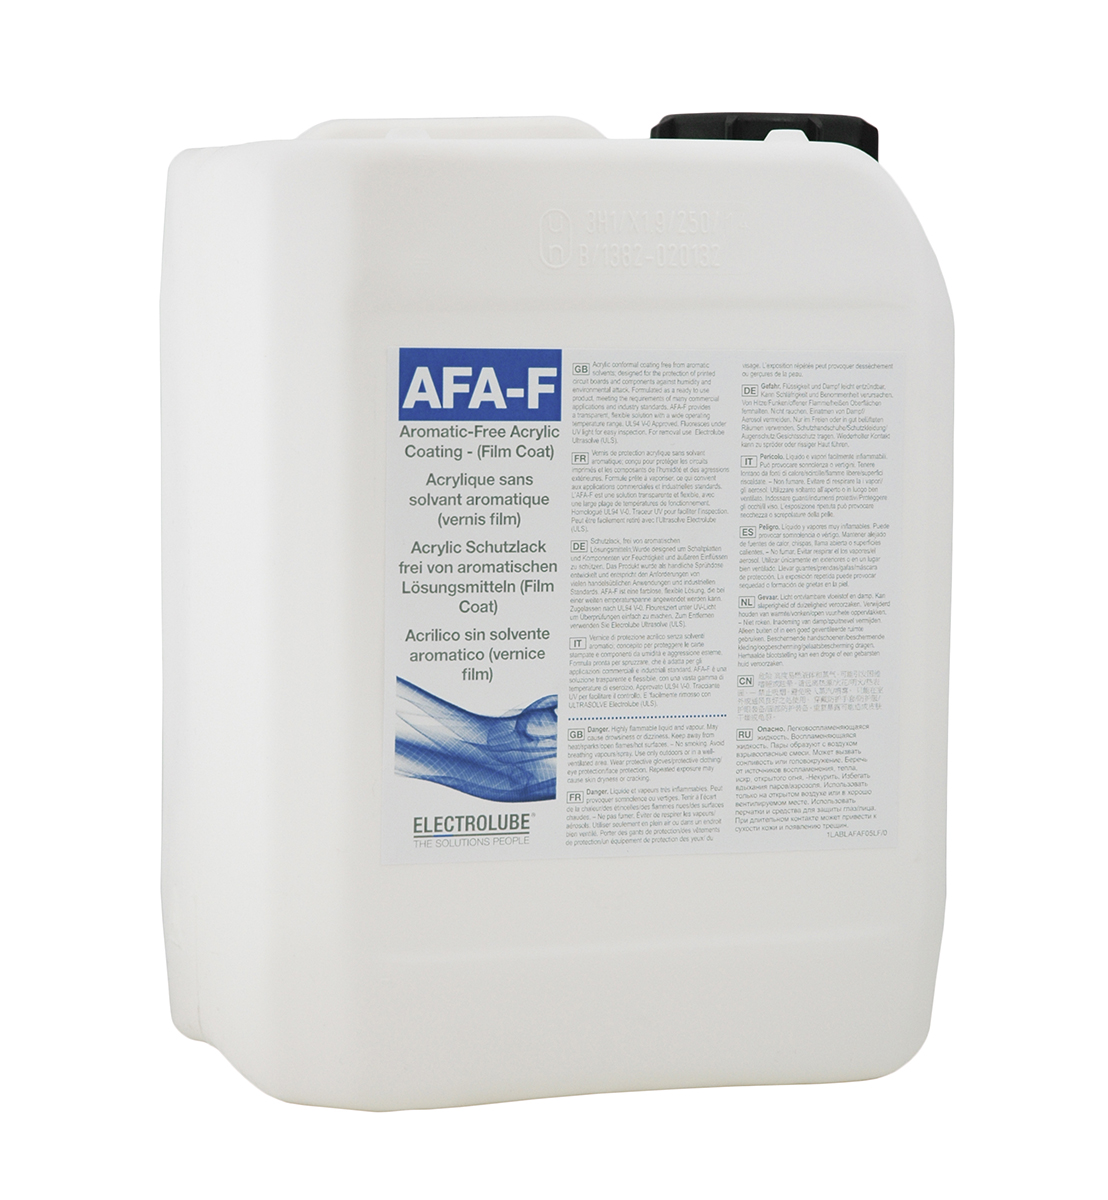 AFAF - Aromatic-Free Acrylic Coating (Film-Coat)